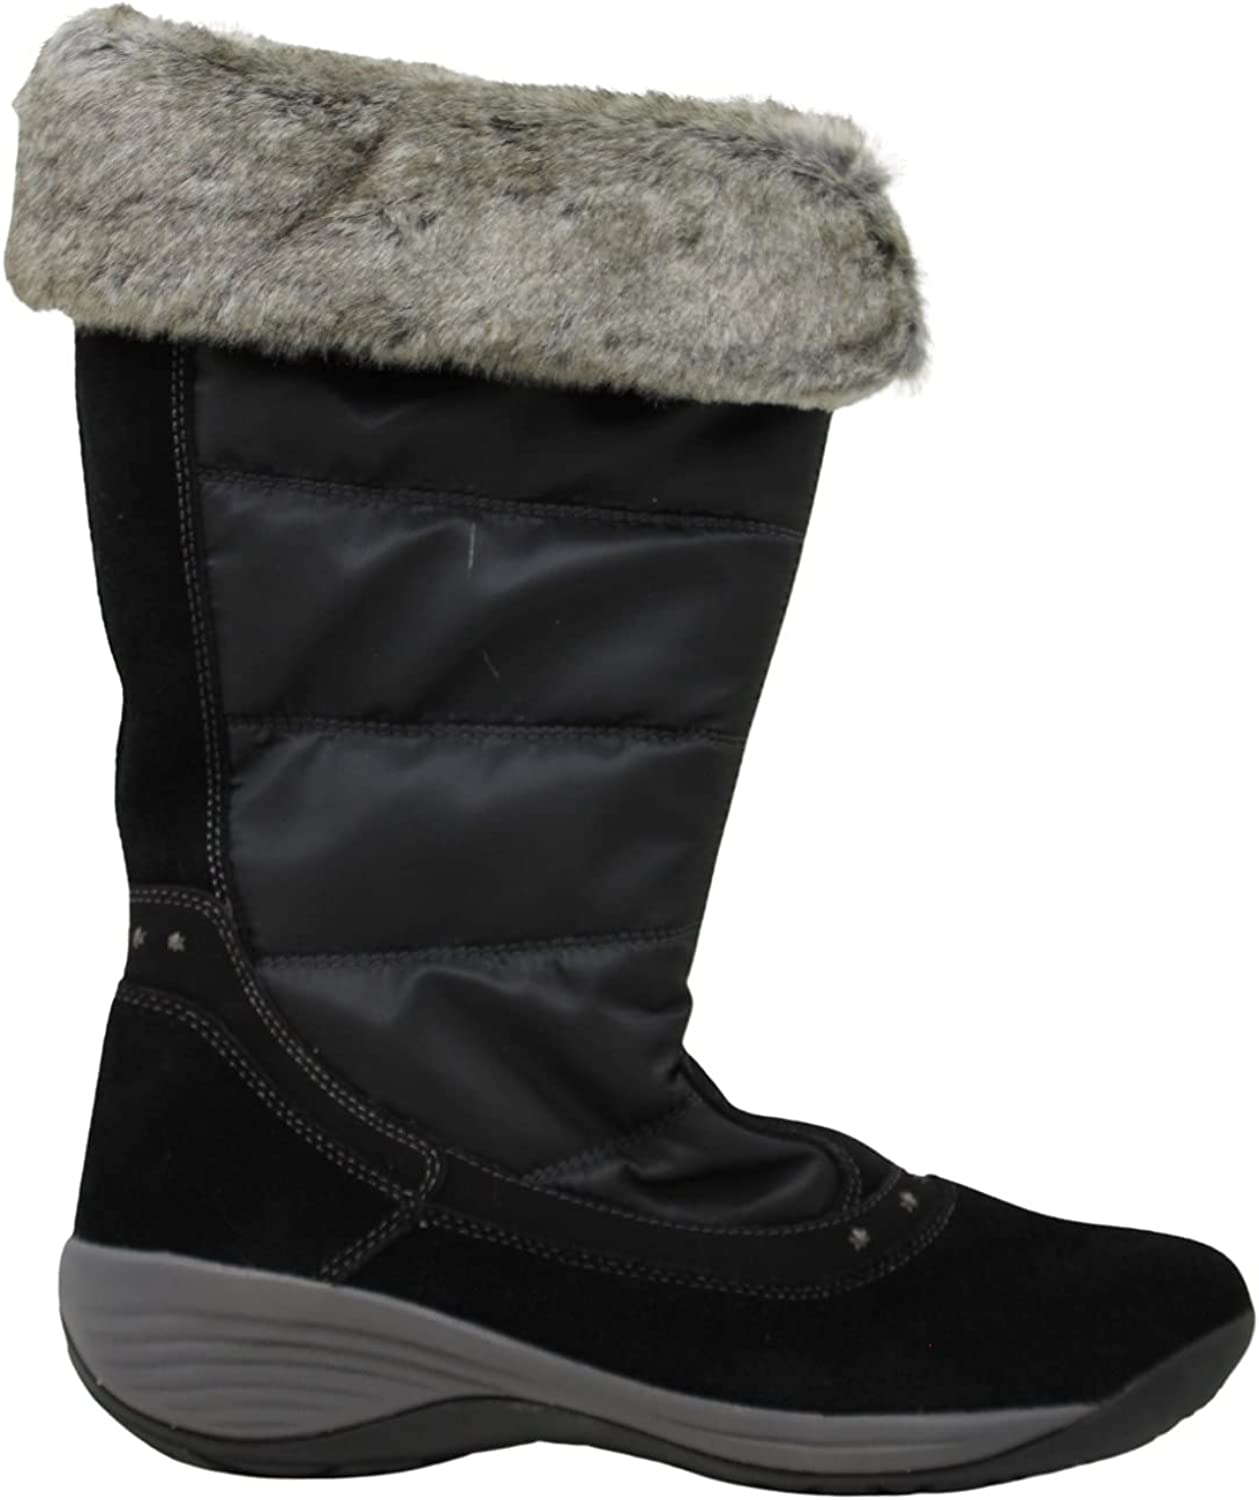 Easy Spirit Womens ICEBANK Closed Toe Mid-Calf Boots Cold Weather Boots